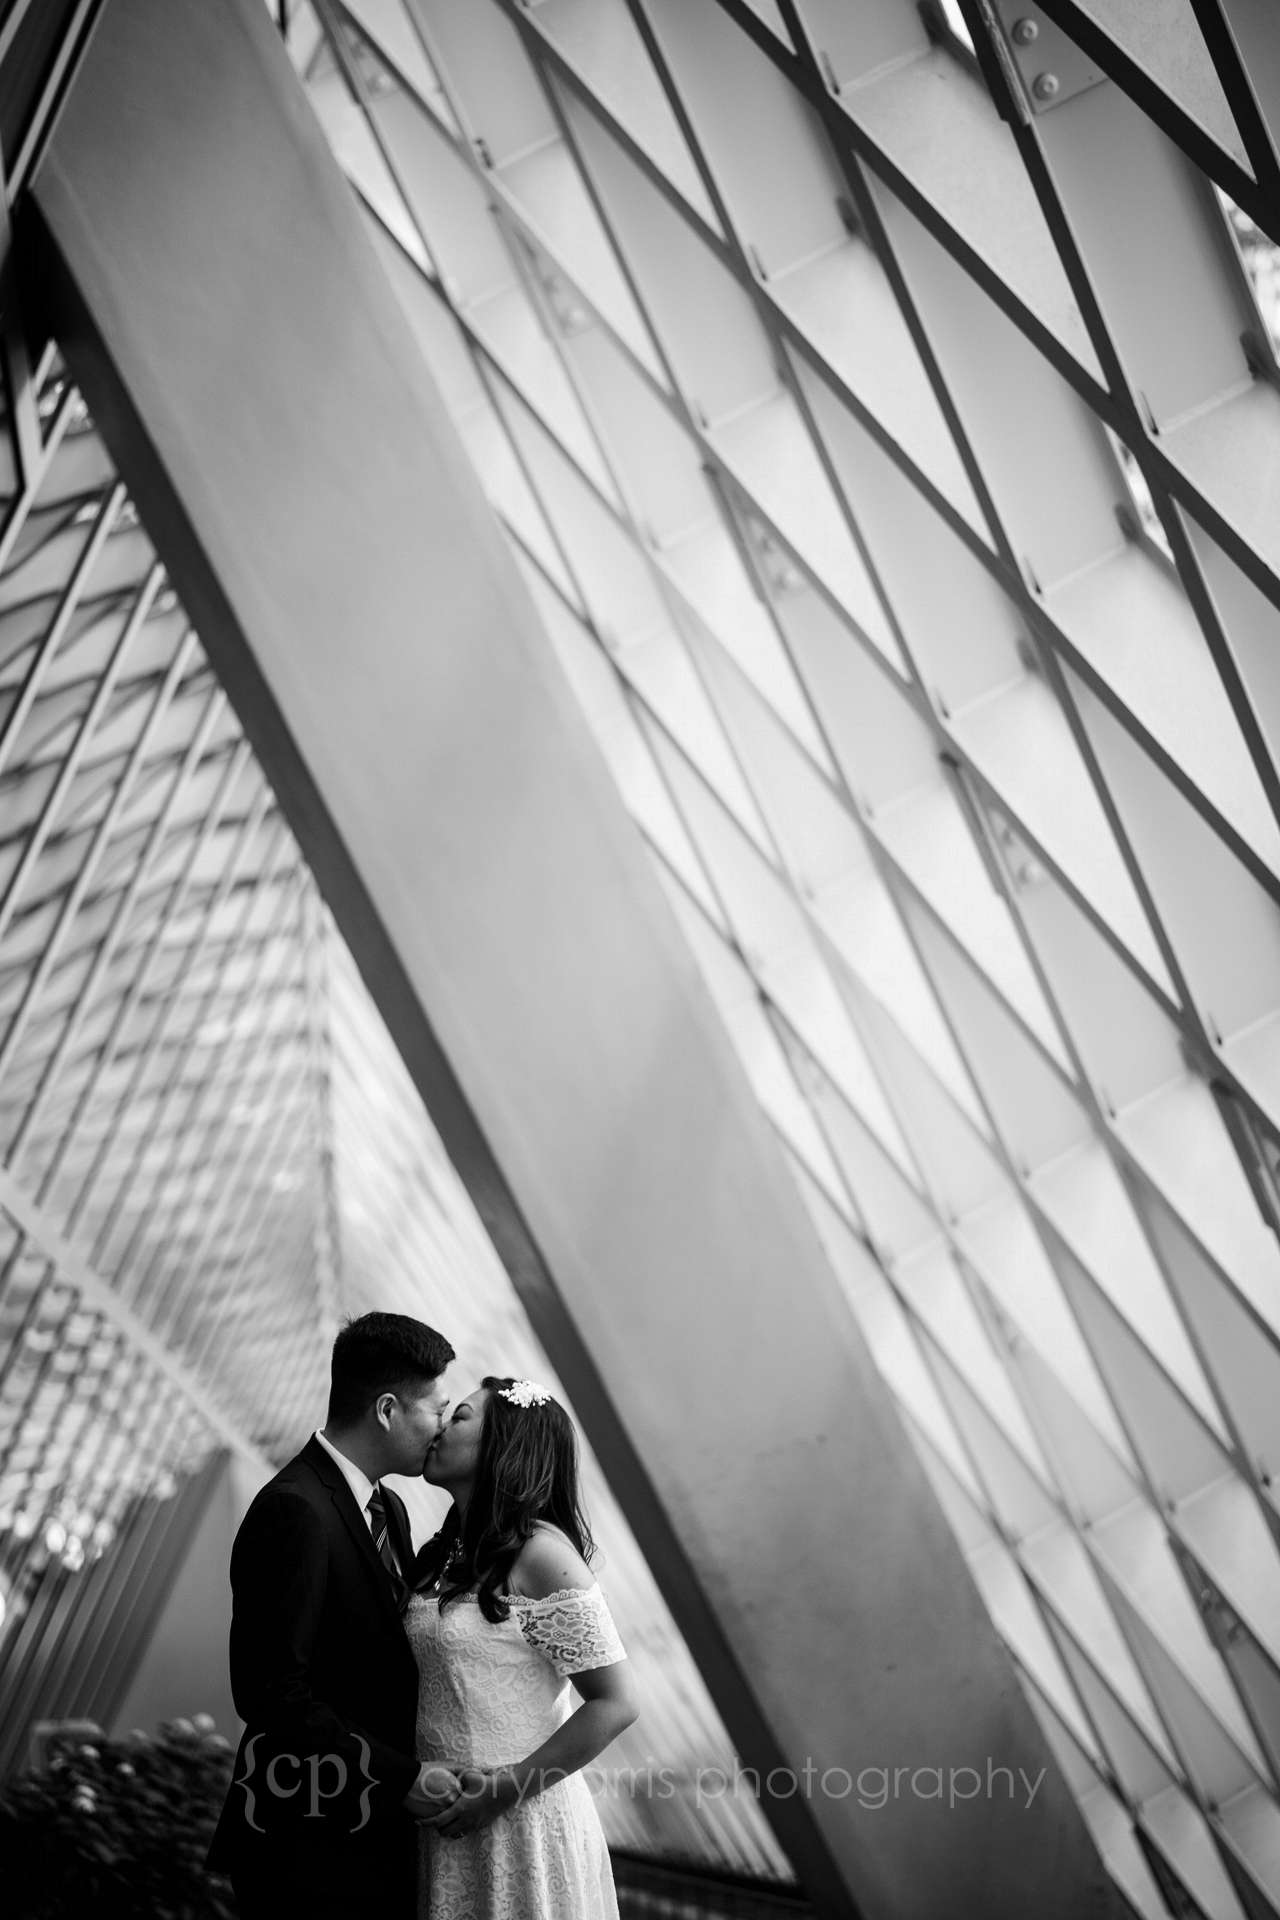 292-Seattle-Elopement-Courthouse.jpg